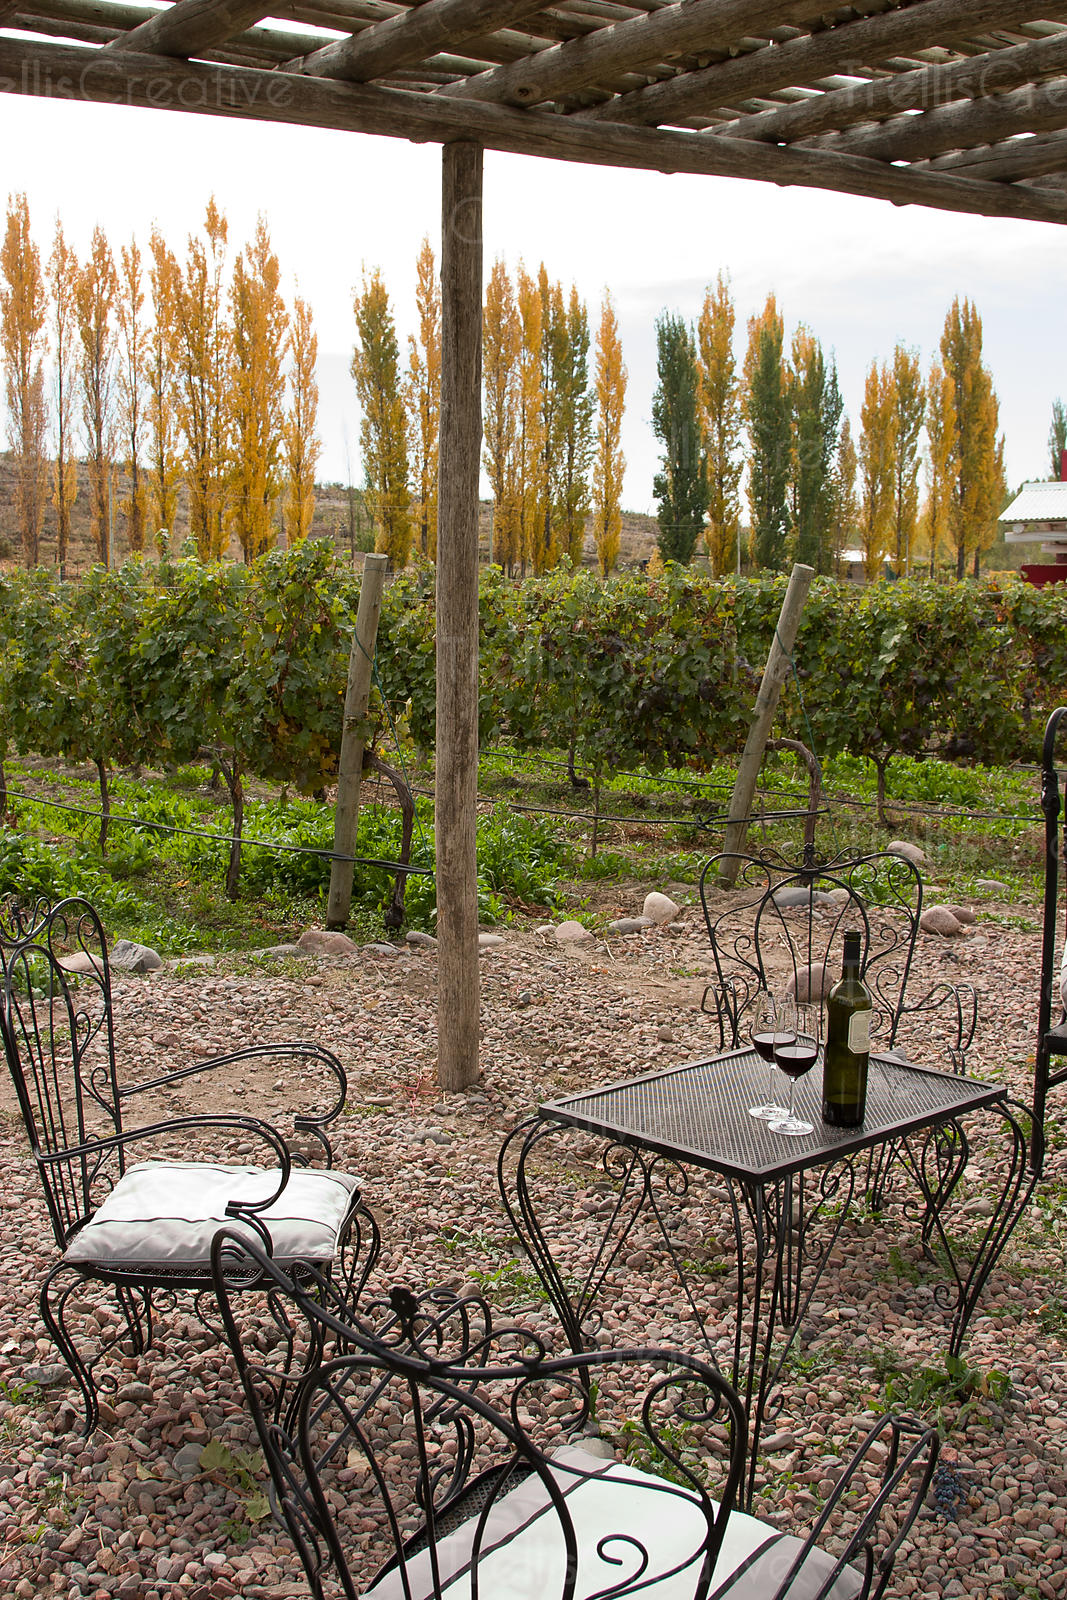 Patio Table Setting Under Trellis, Vineyards Beyond Edge Of Gravel Patio,  Red Wine And